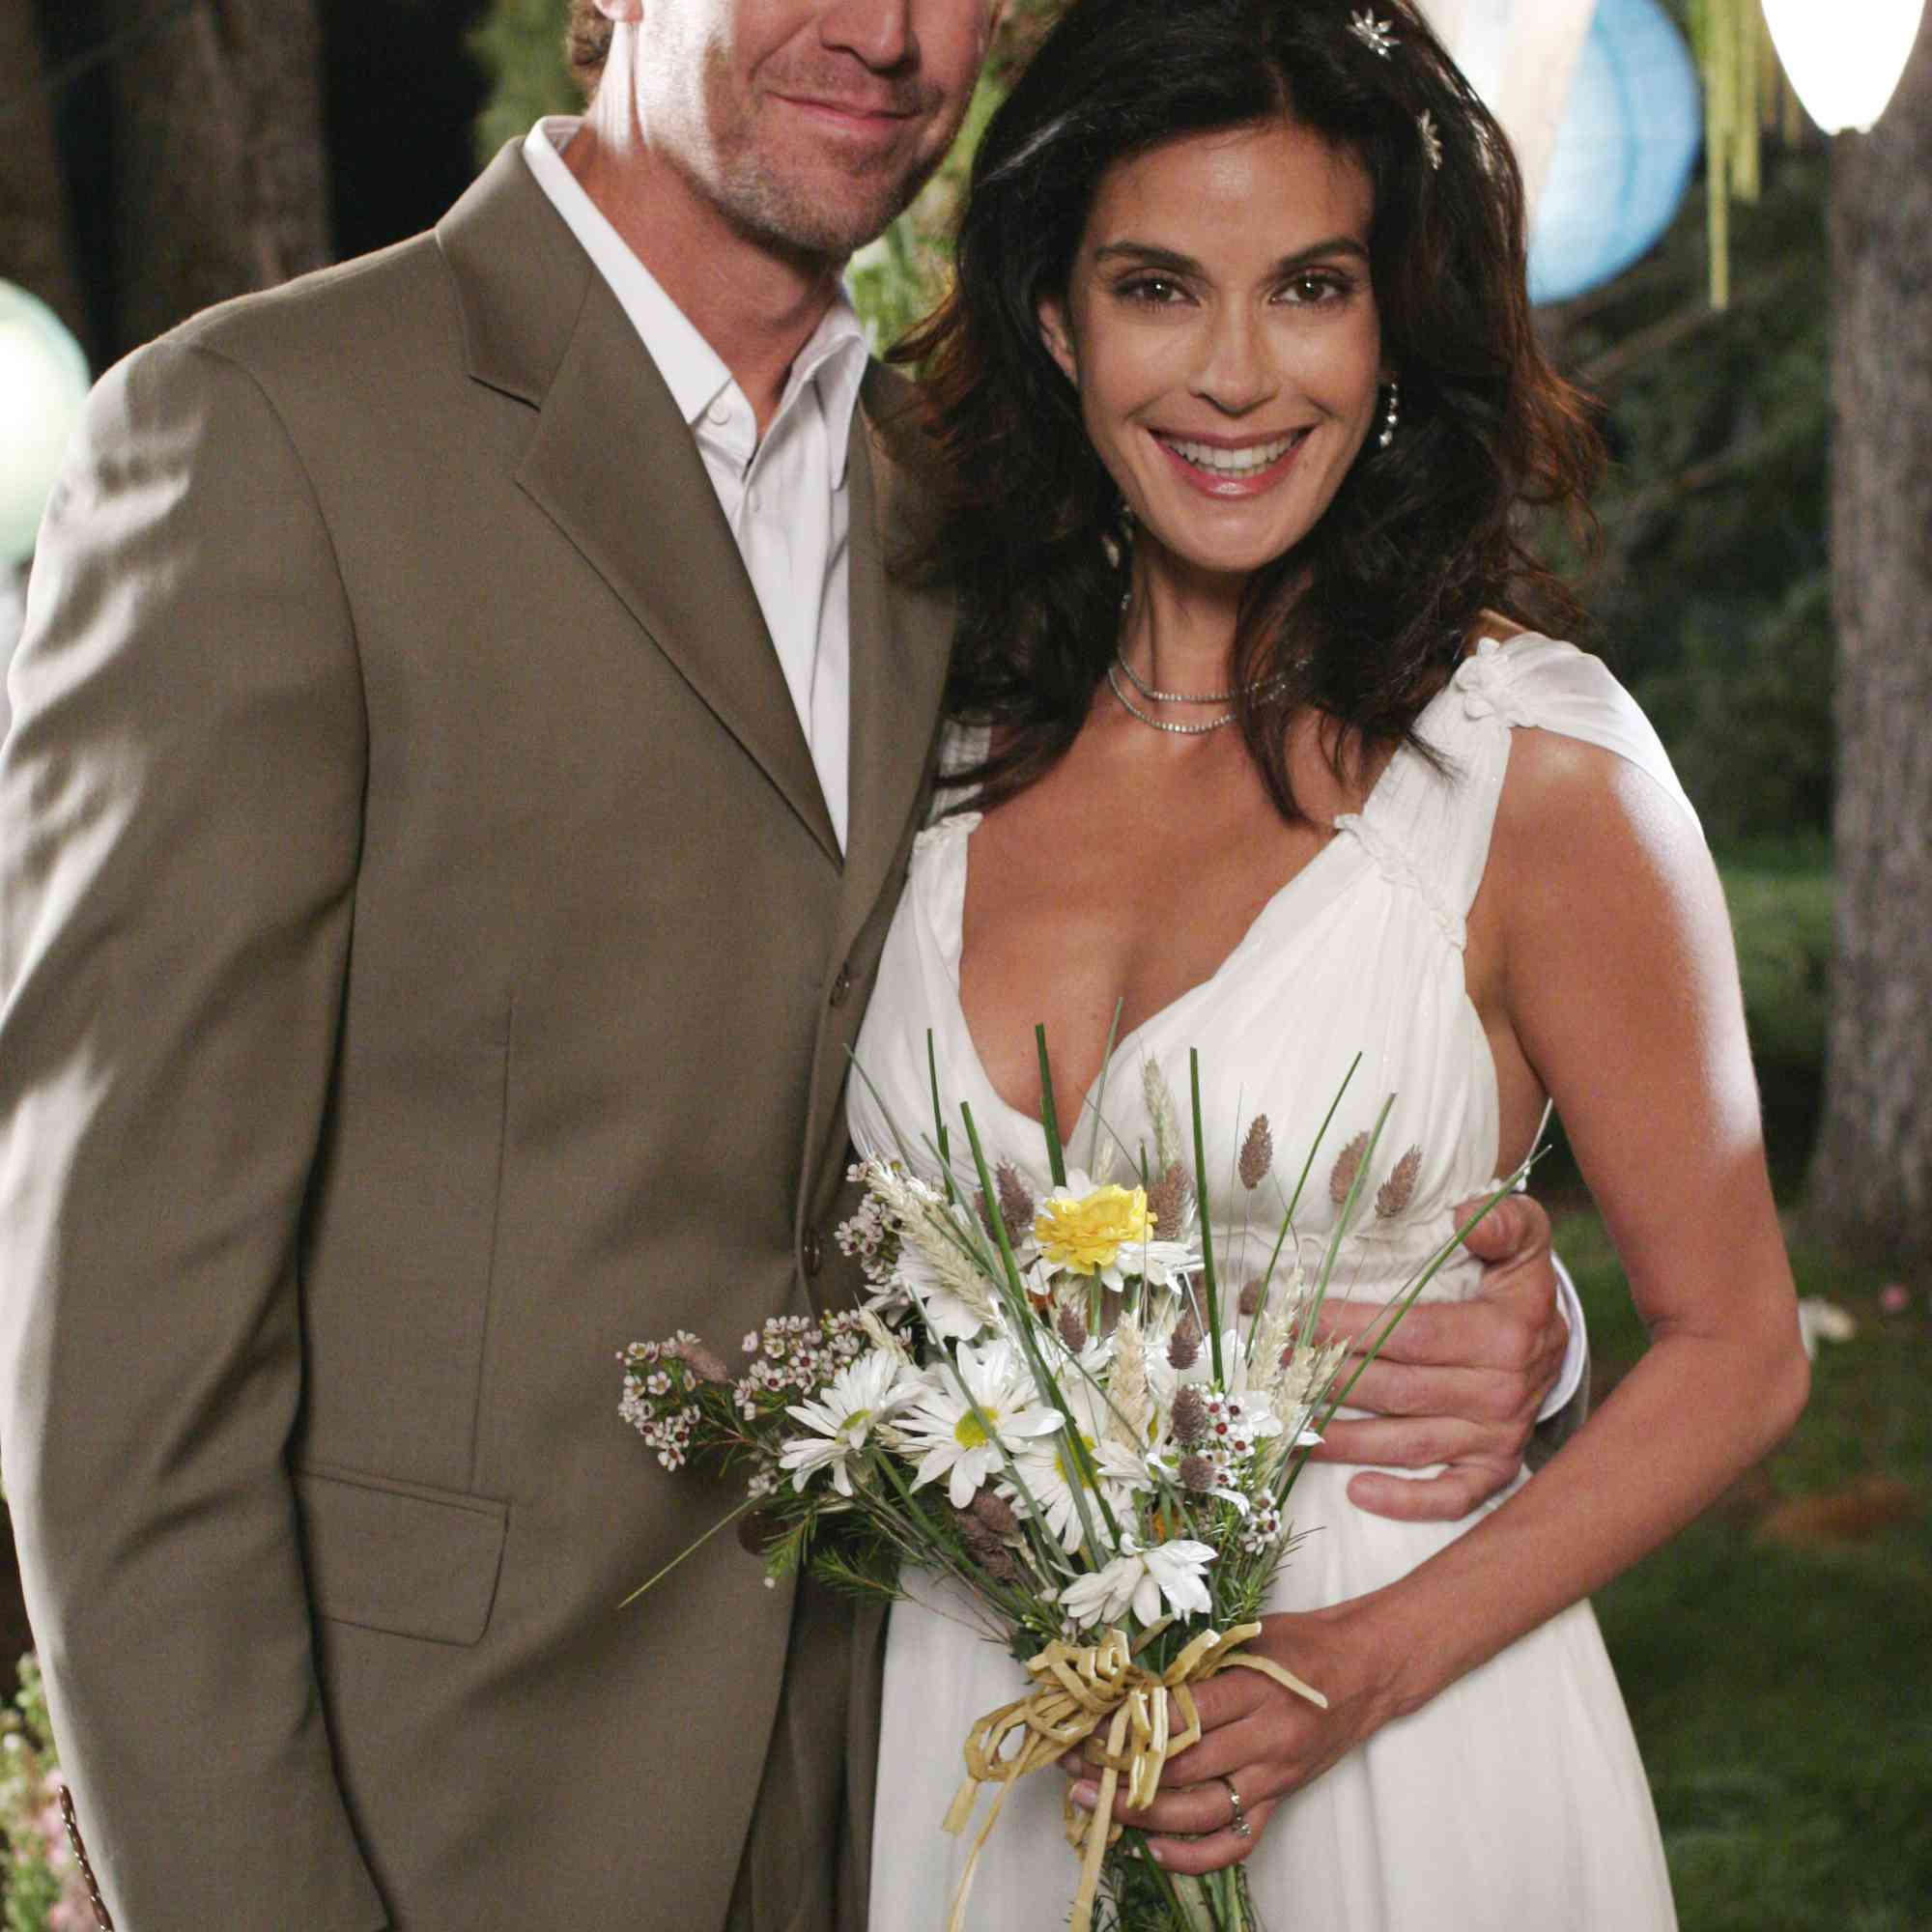 Mike and Susan Desperate Housewives